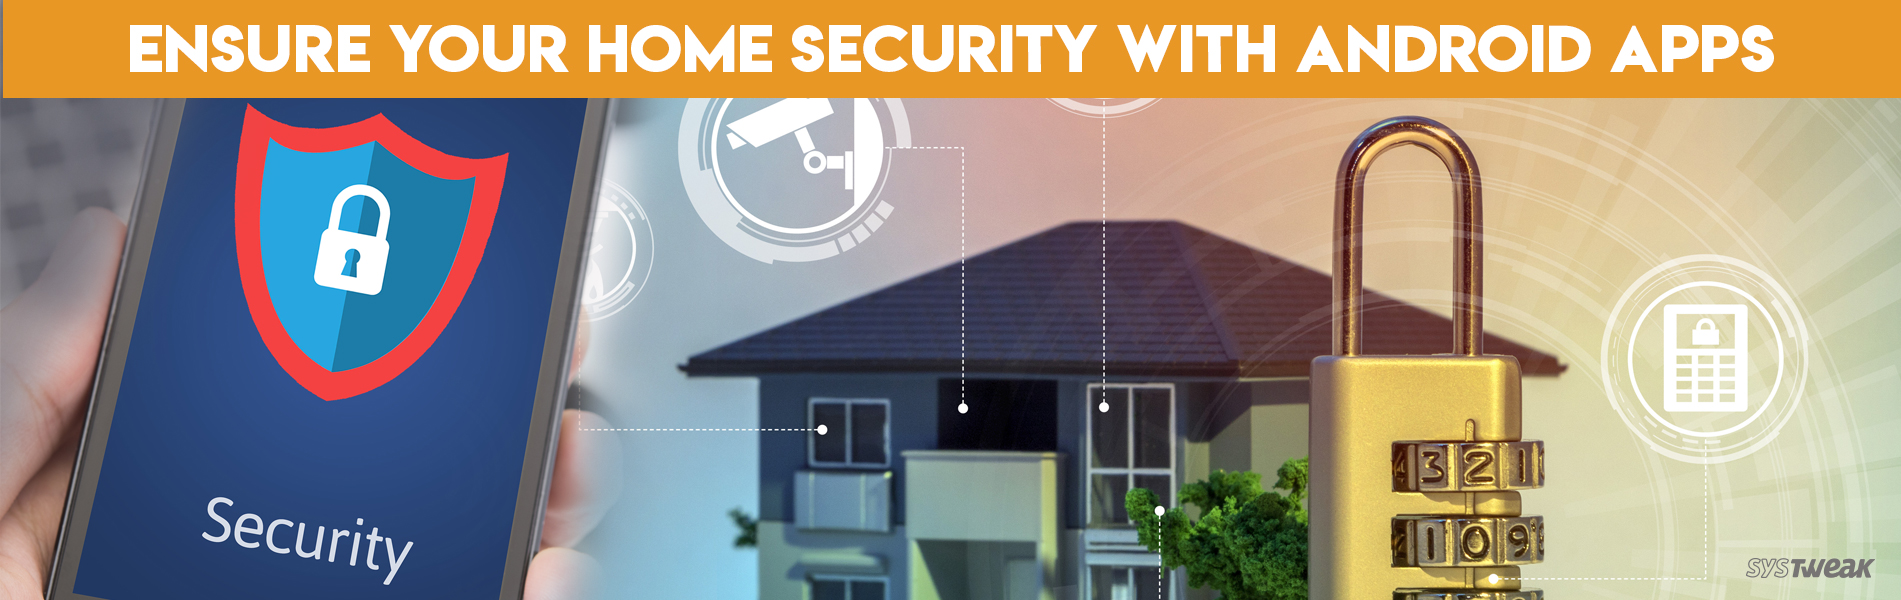 Android Apps That Could Help You Secure Your Home